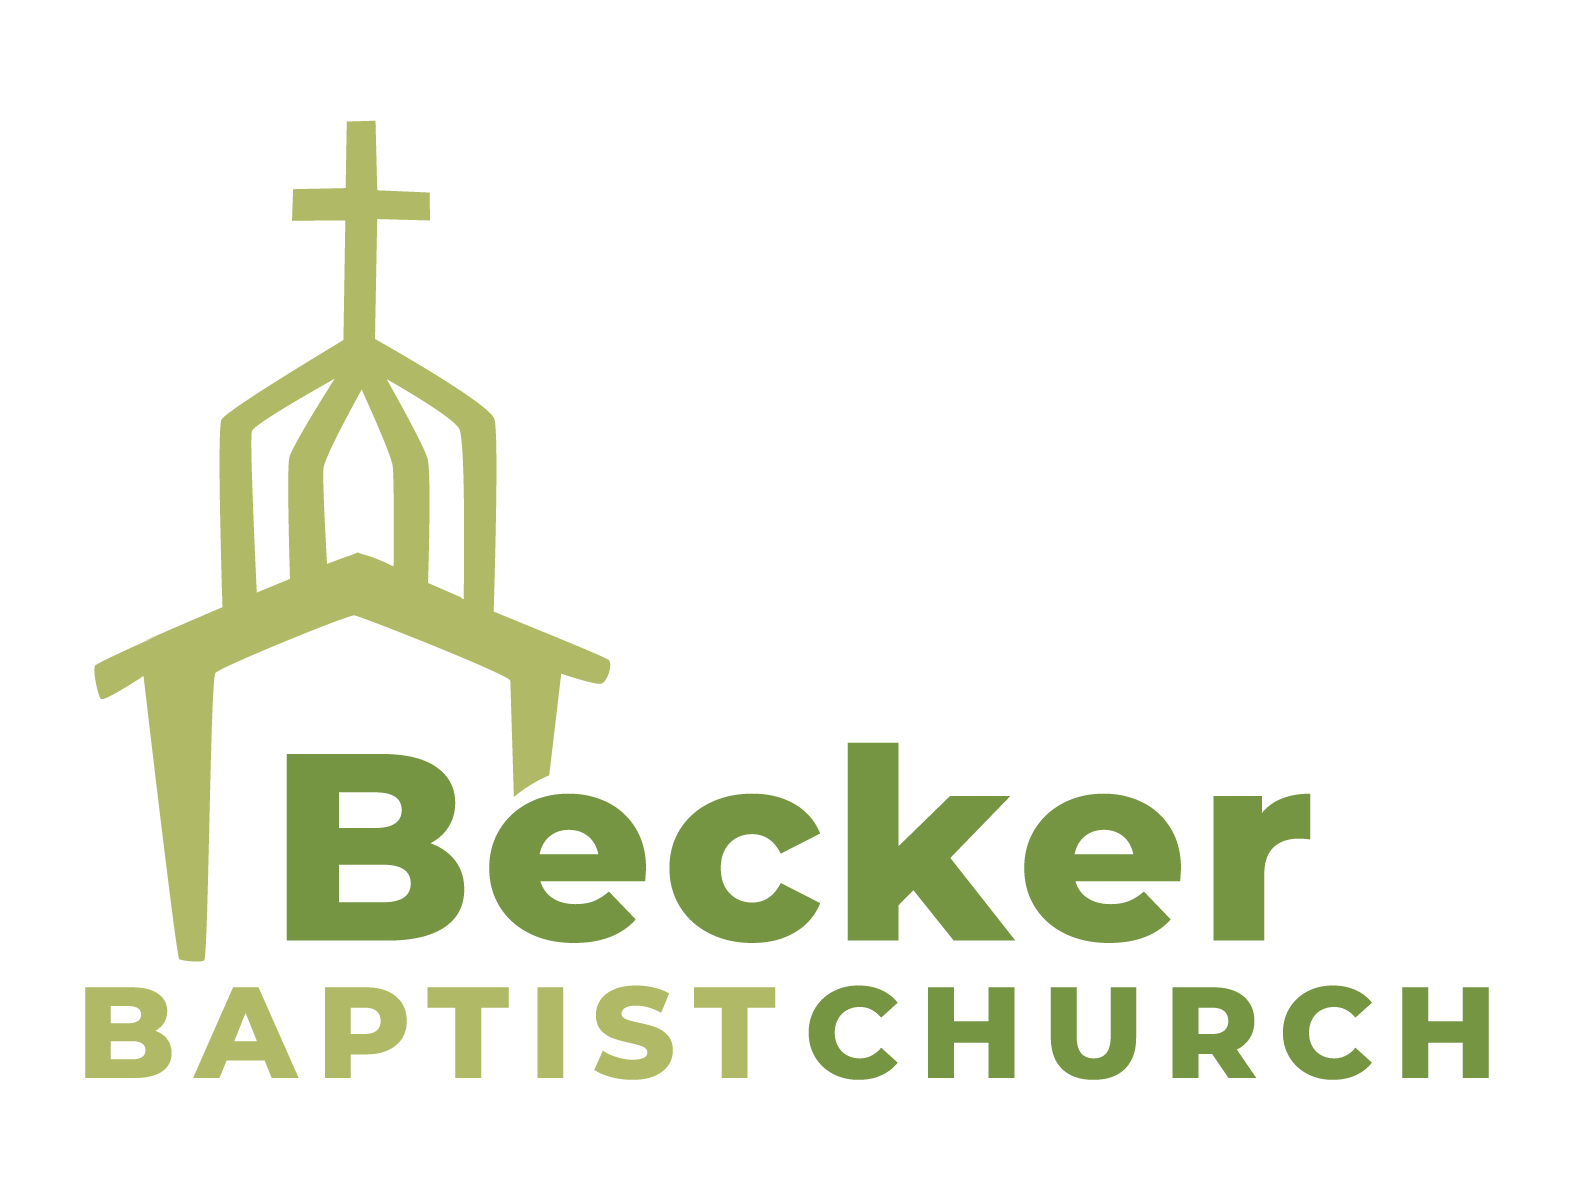 Becker Baptist Church Logo